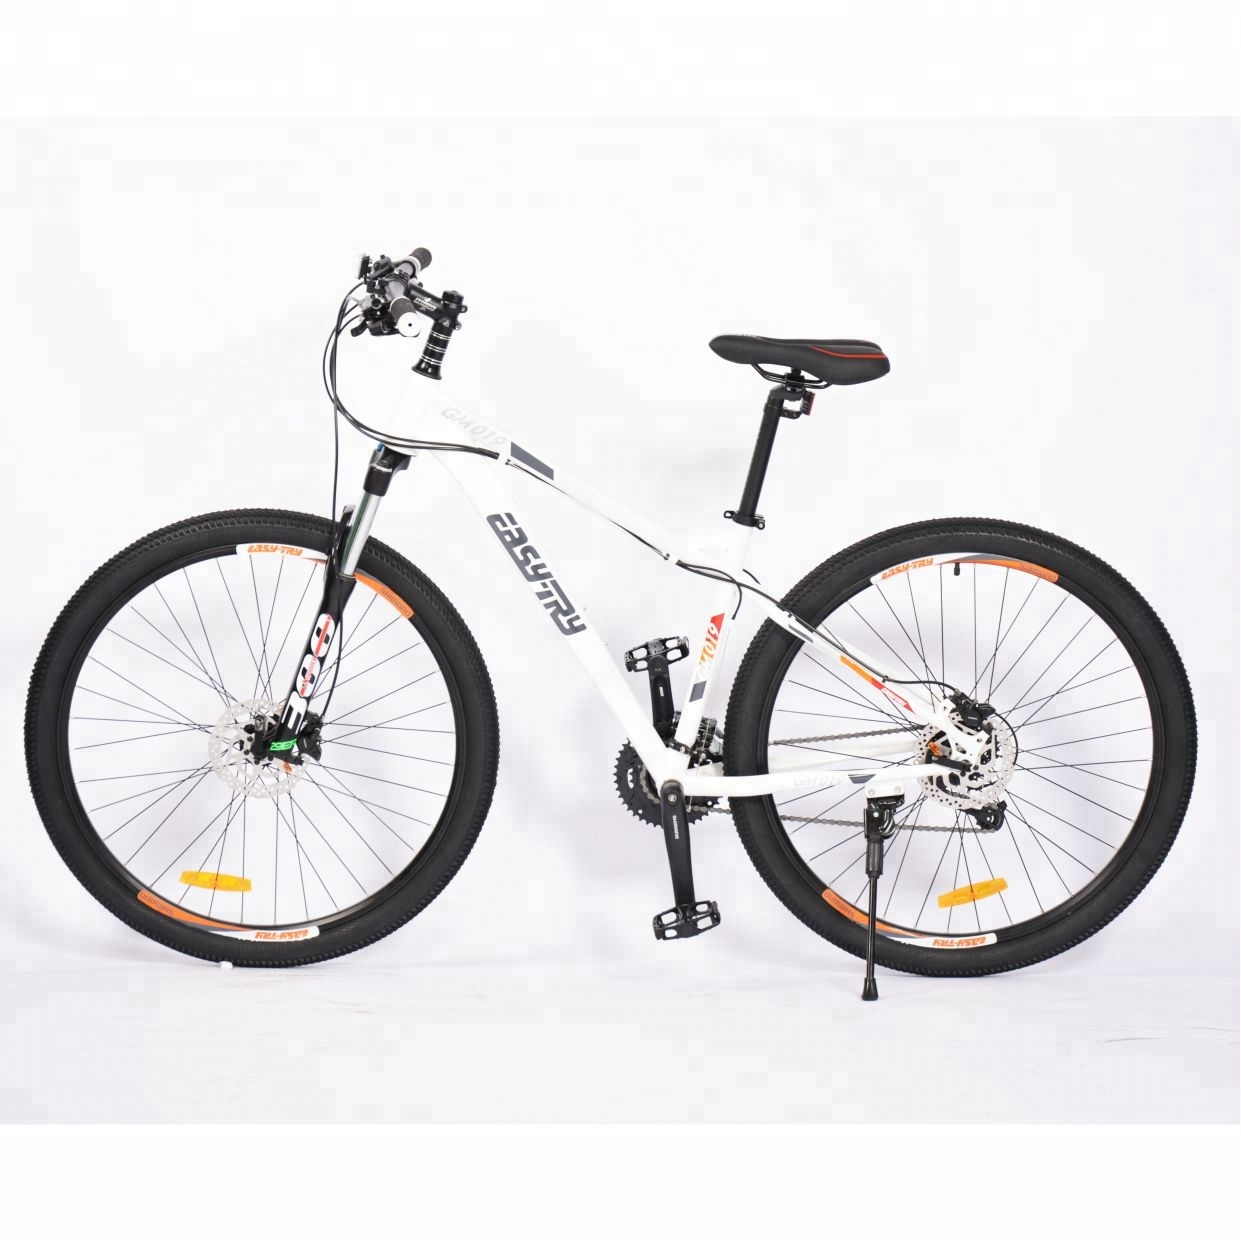 low price bikes aluminum alloy custom bike mountain <strong>bicycle</strong>